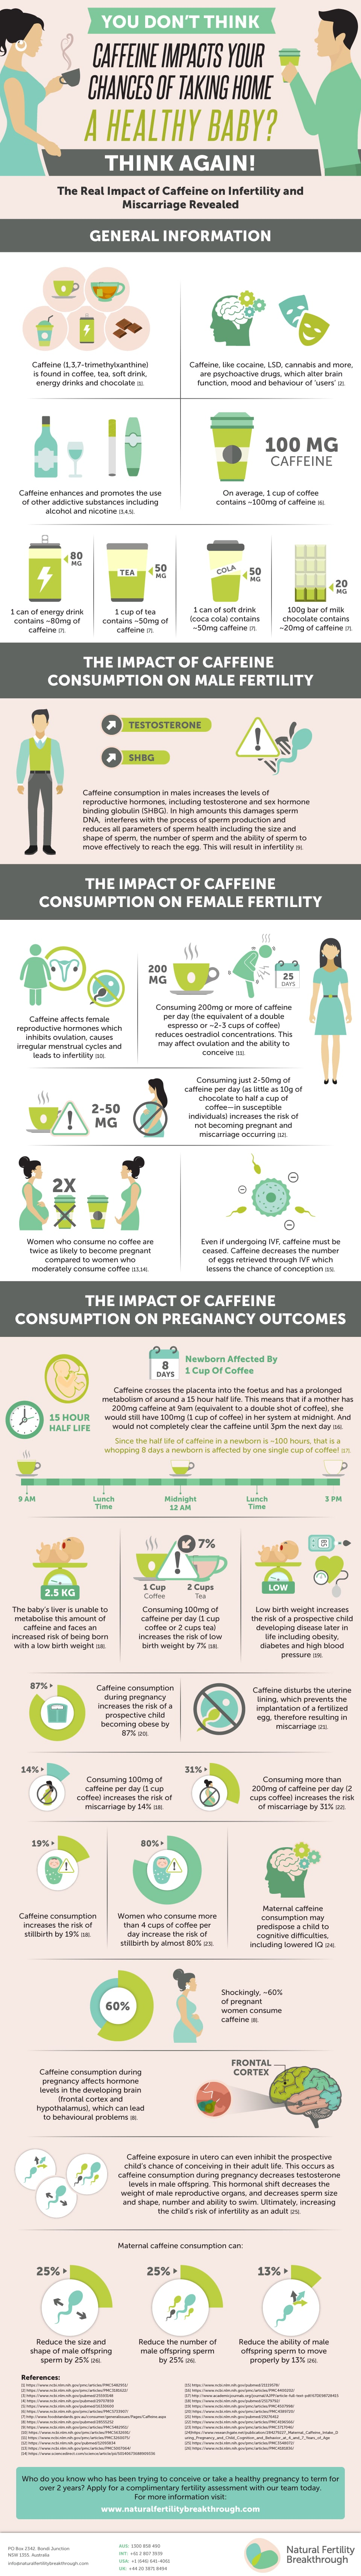 How Caffeine Imapcts Fertility Infographic_The Real Impact of Caffeine on Infertility and Miscarriages_Gabriela Rosa Fertility Specialist